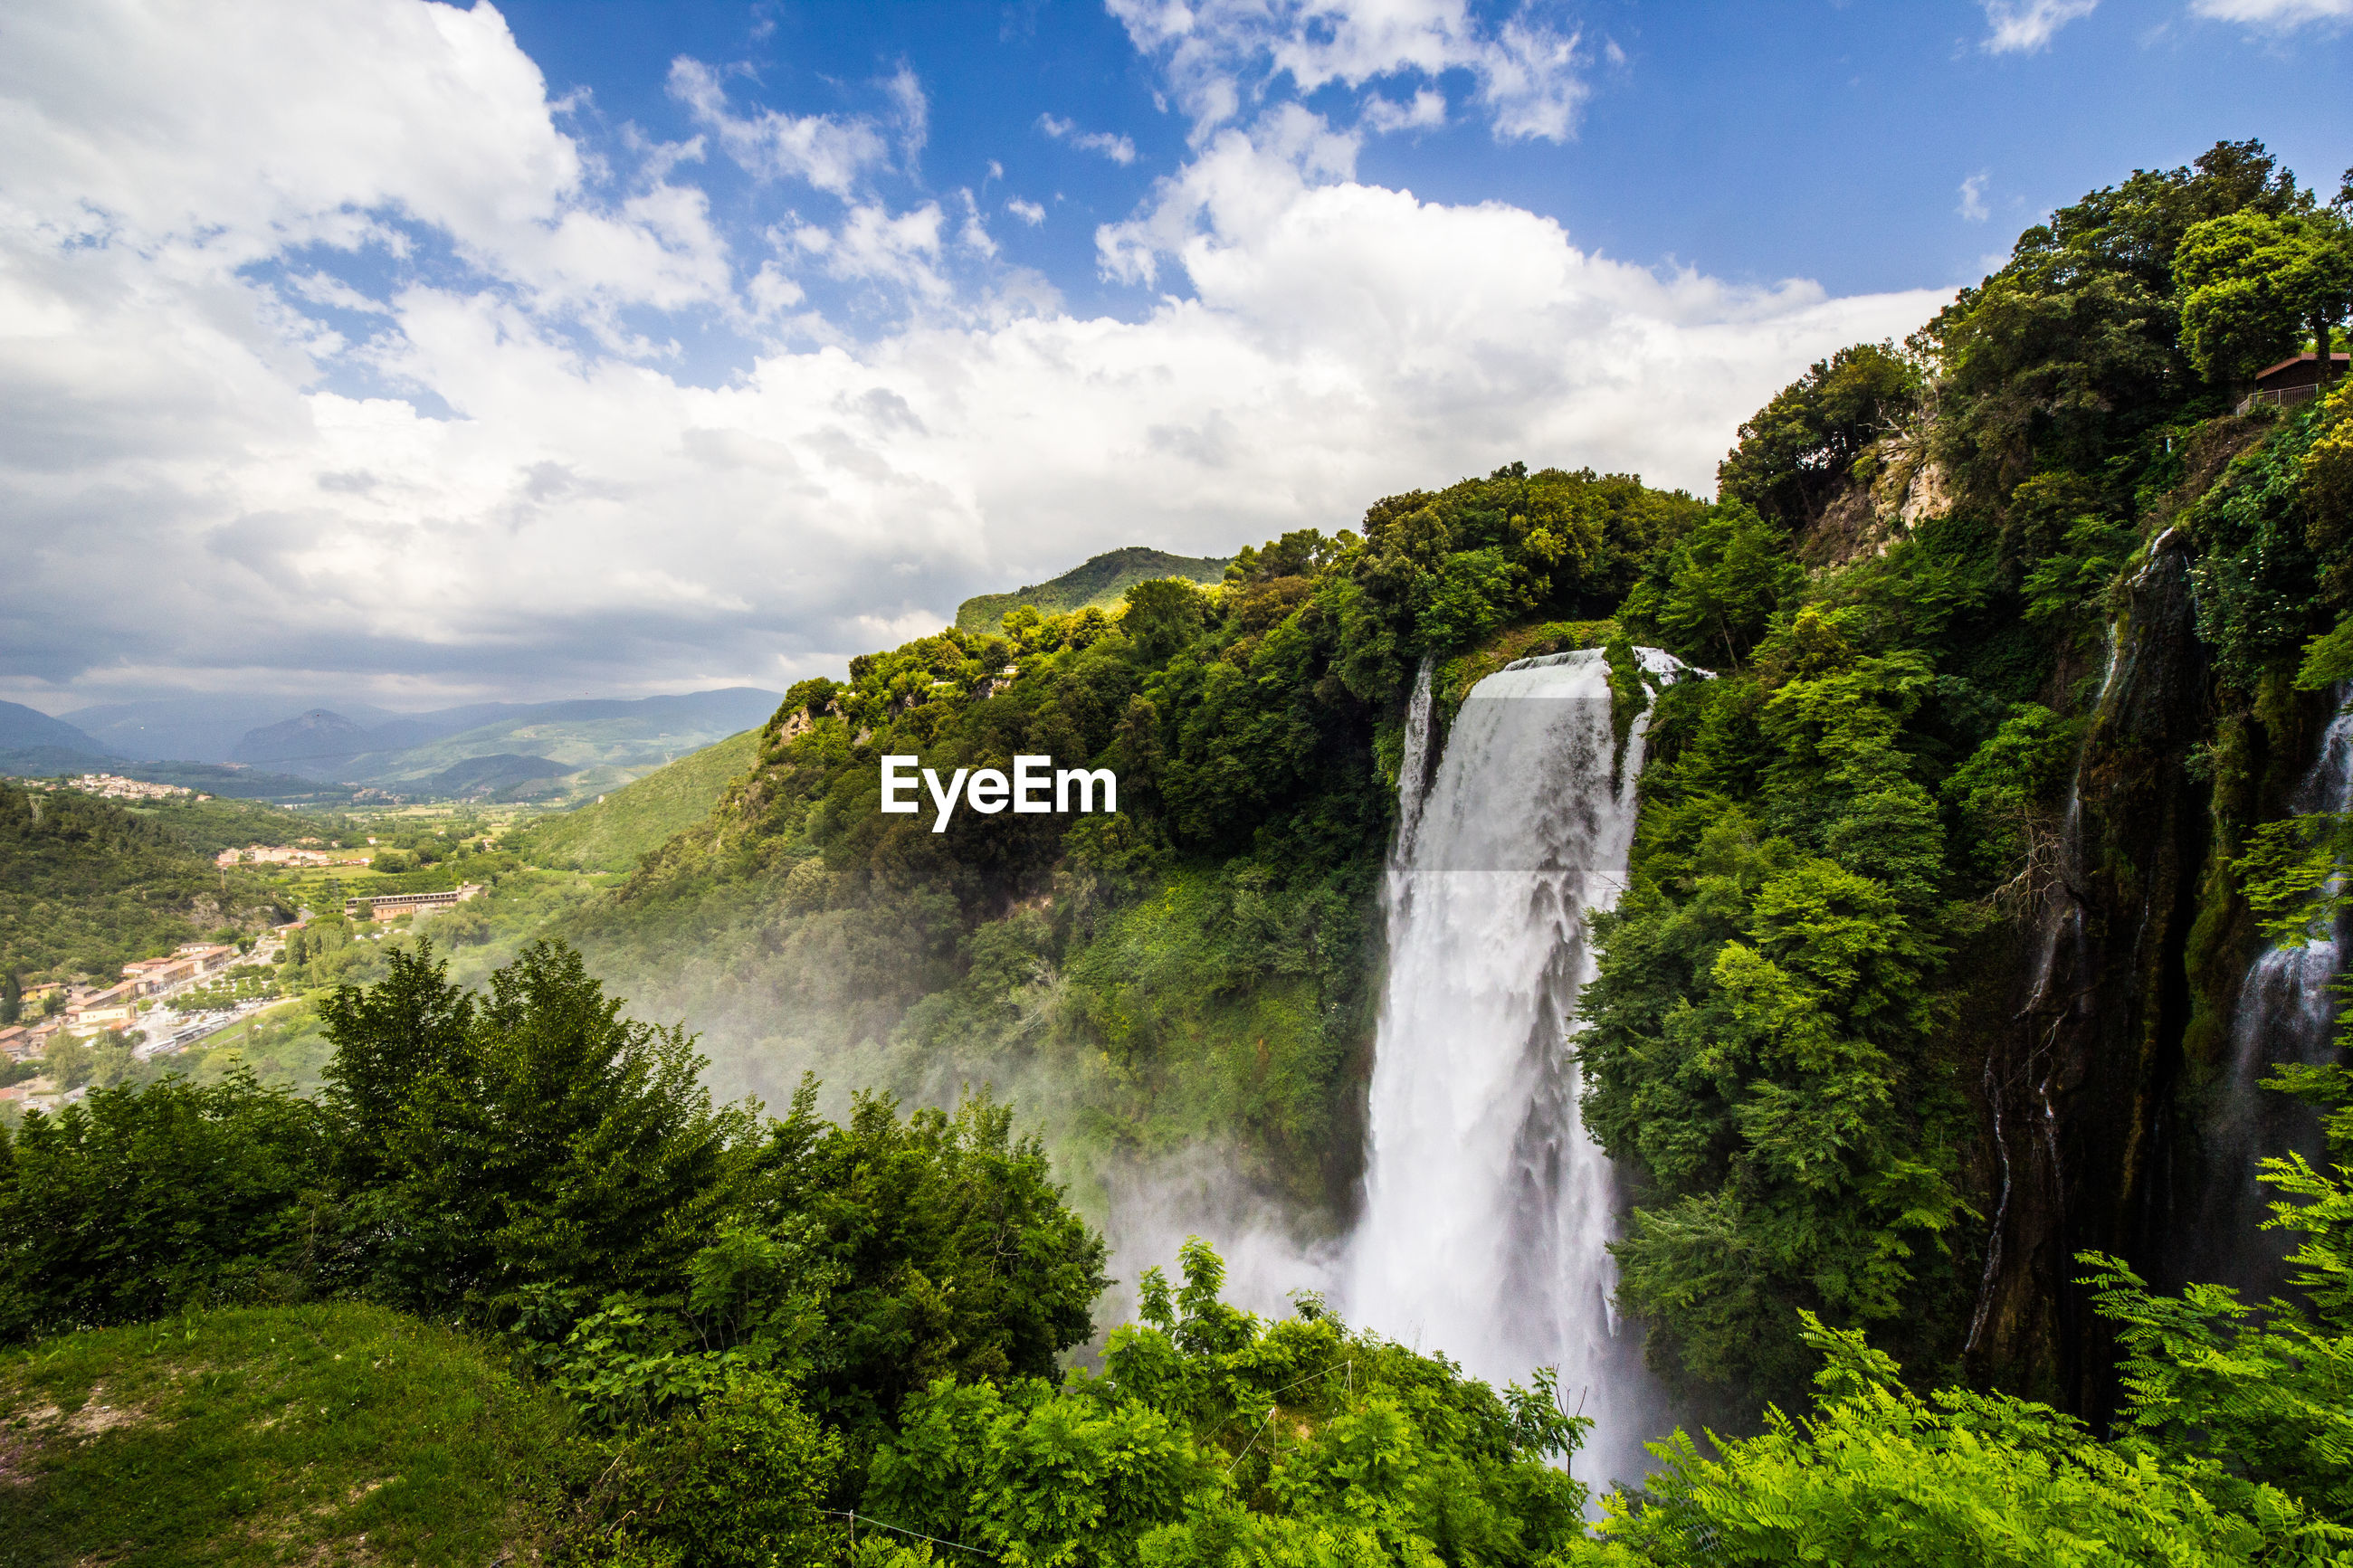 SCENIC VIEW OF WATERFALL IN FOREST AGAINST CLOUDY SKY